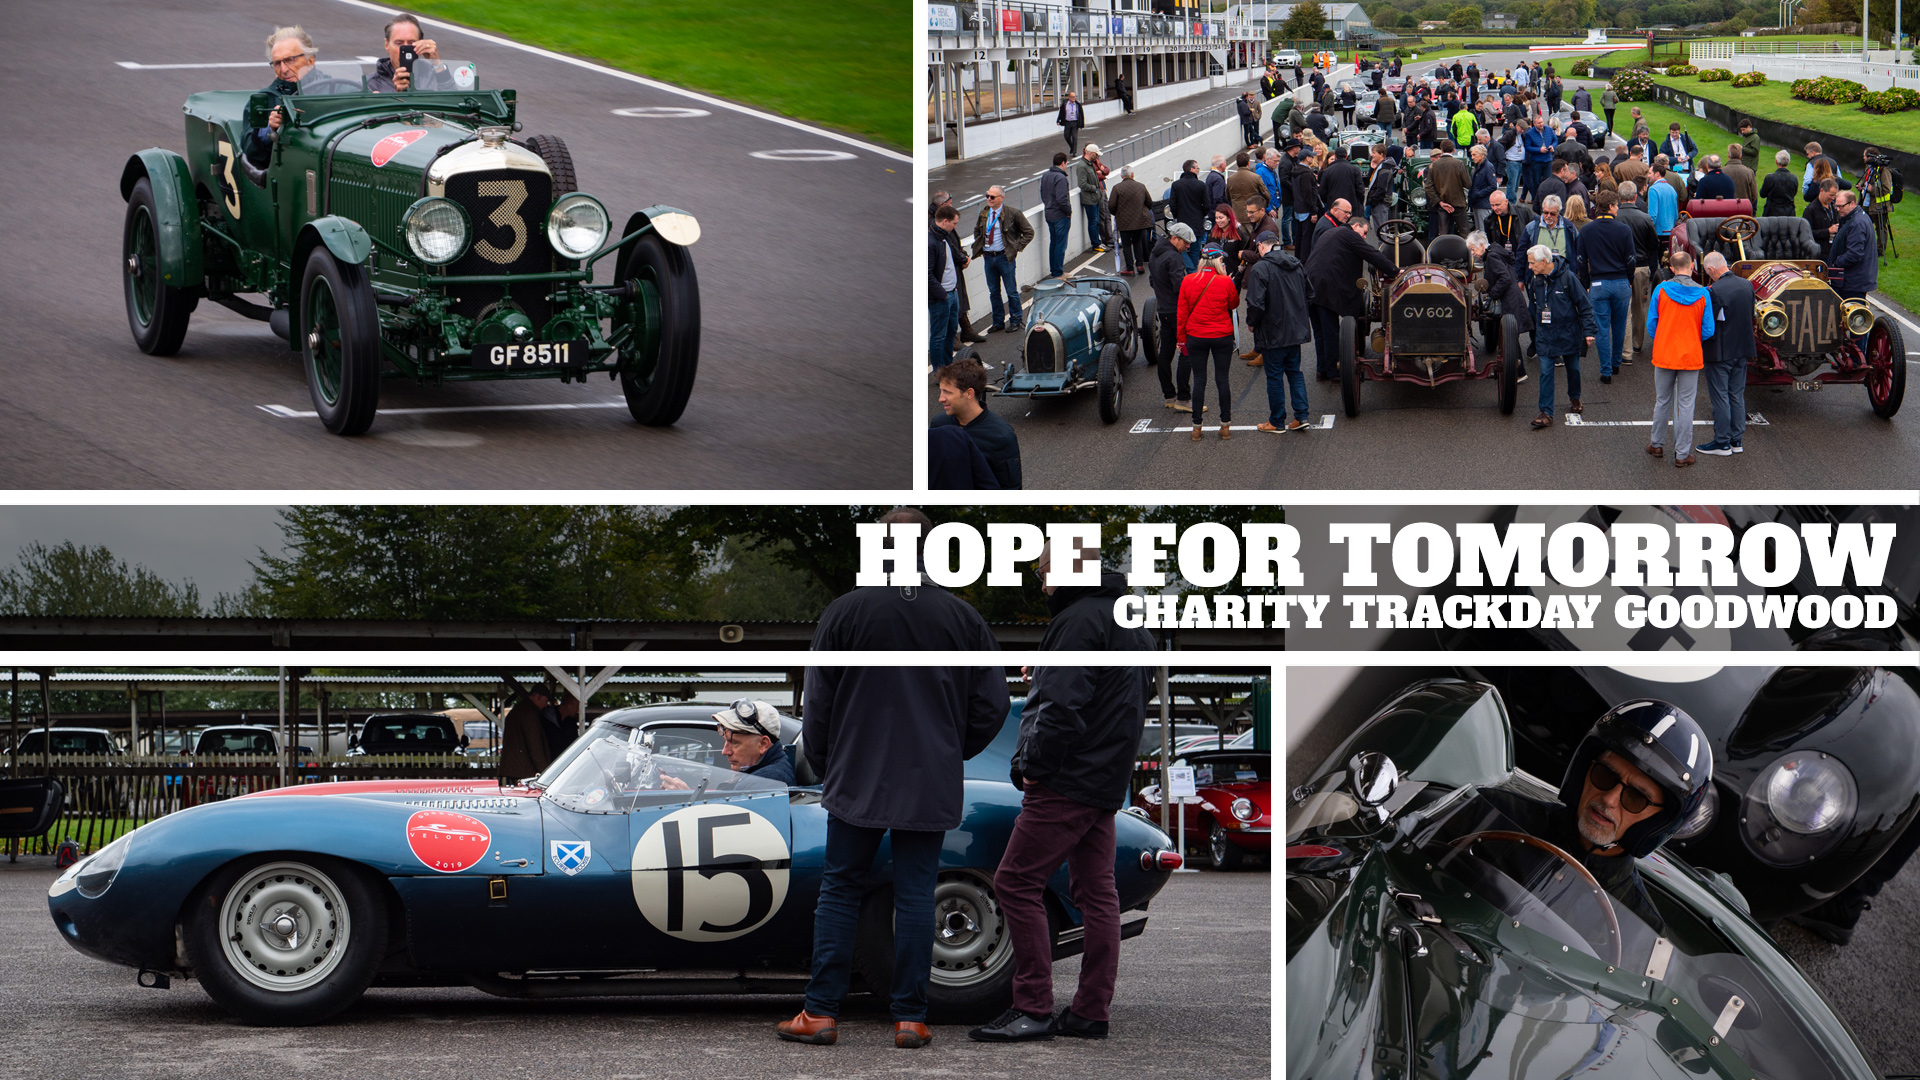 Hope for Tomorrow Goodwood Veloce Trackday raises £100k for Charity